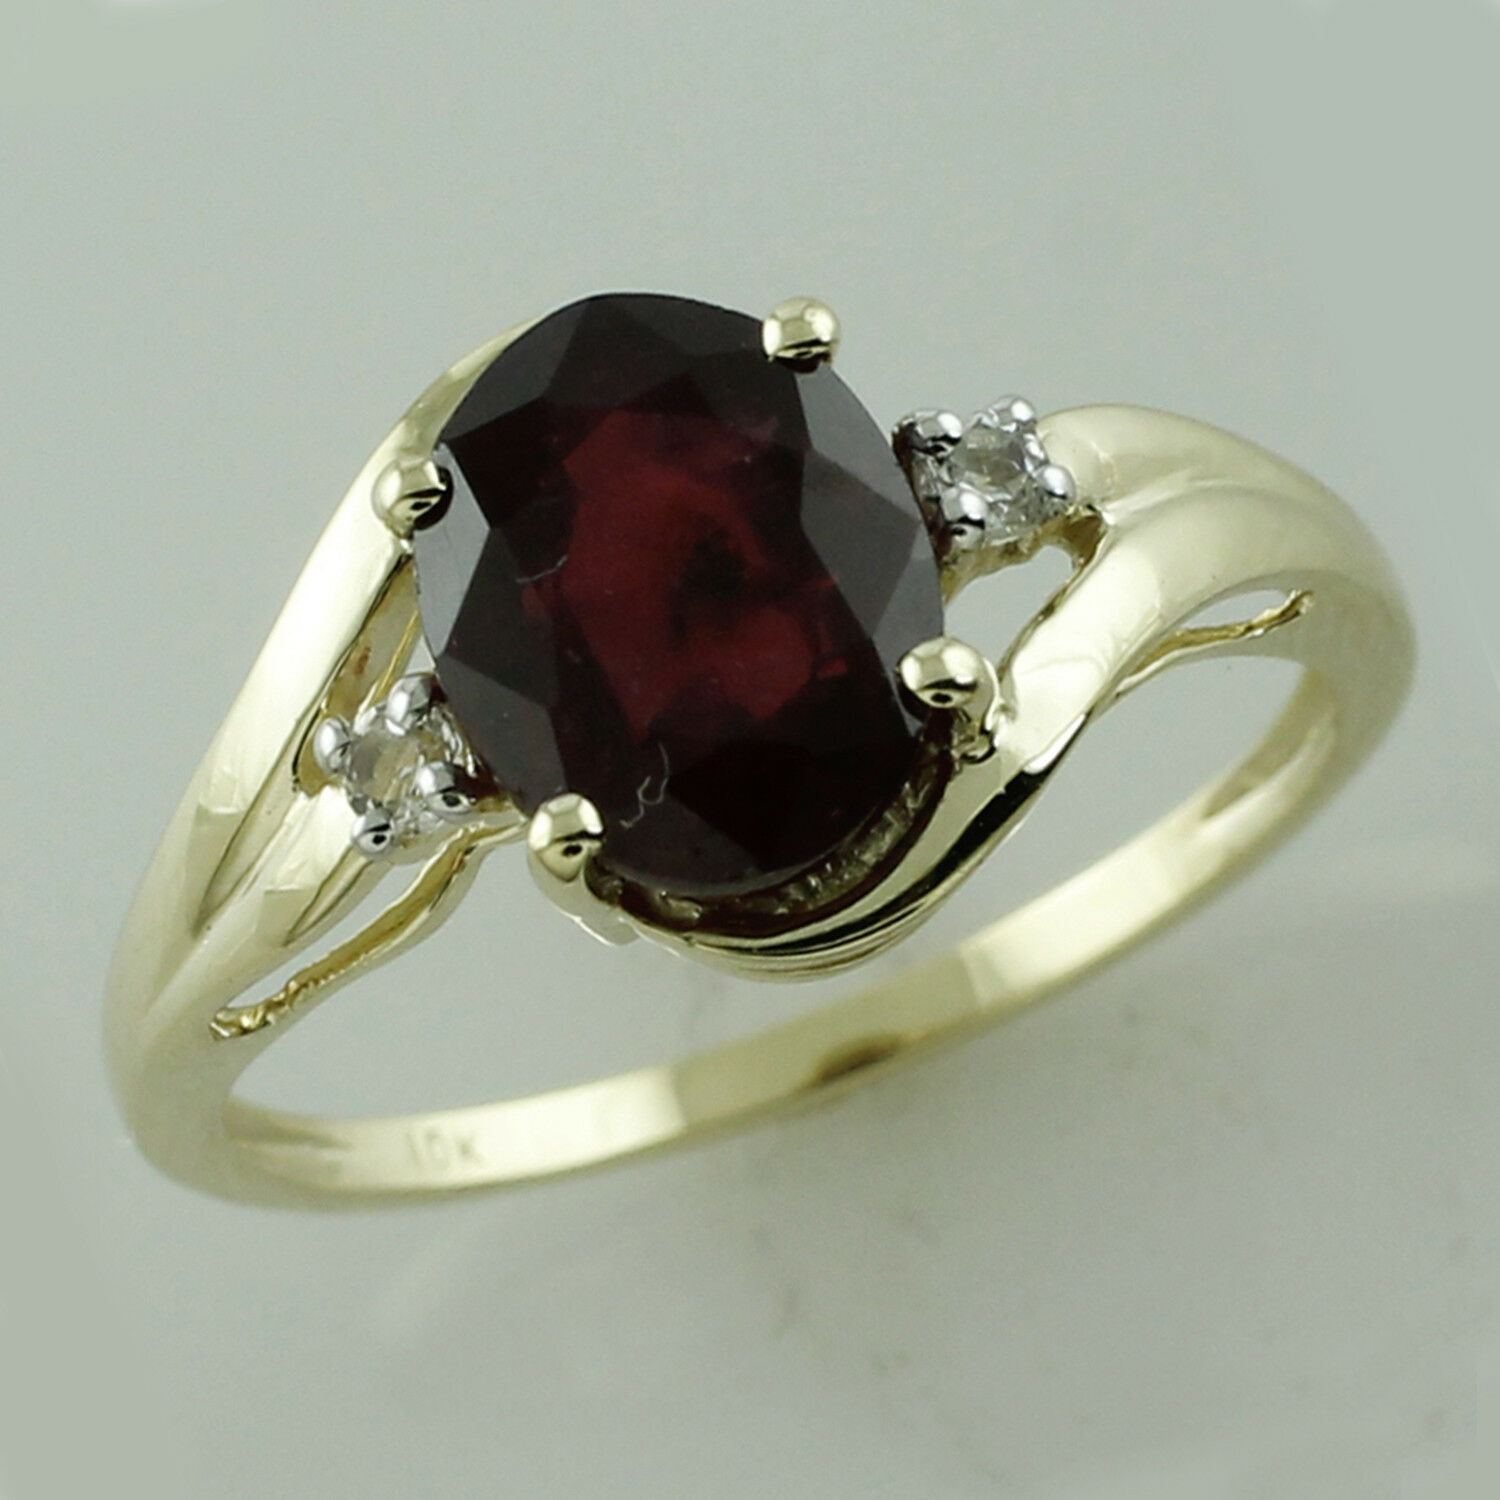 Thailand Natural Ruby 2.03 Ct. With Diamond Genuine Ring Solid gold Lady Jewelry